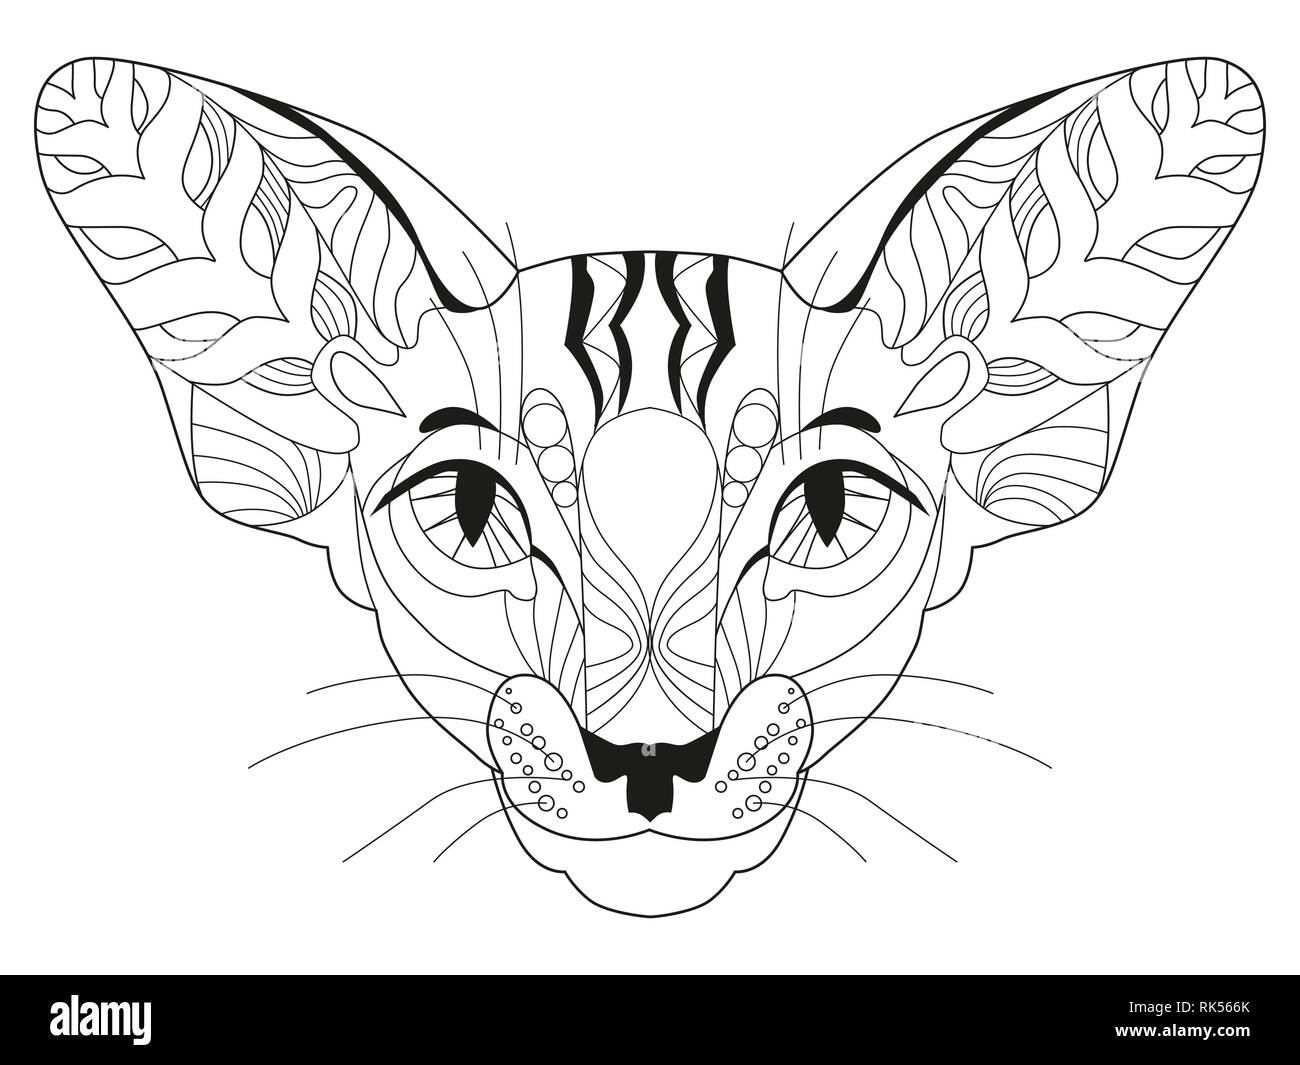 zentangle stylized head of cat hand drawn lace vector illustration RK566K